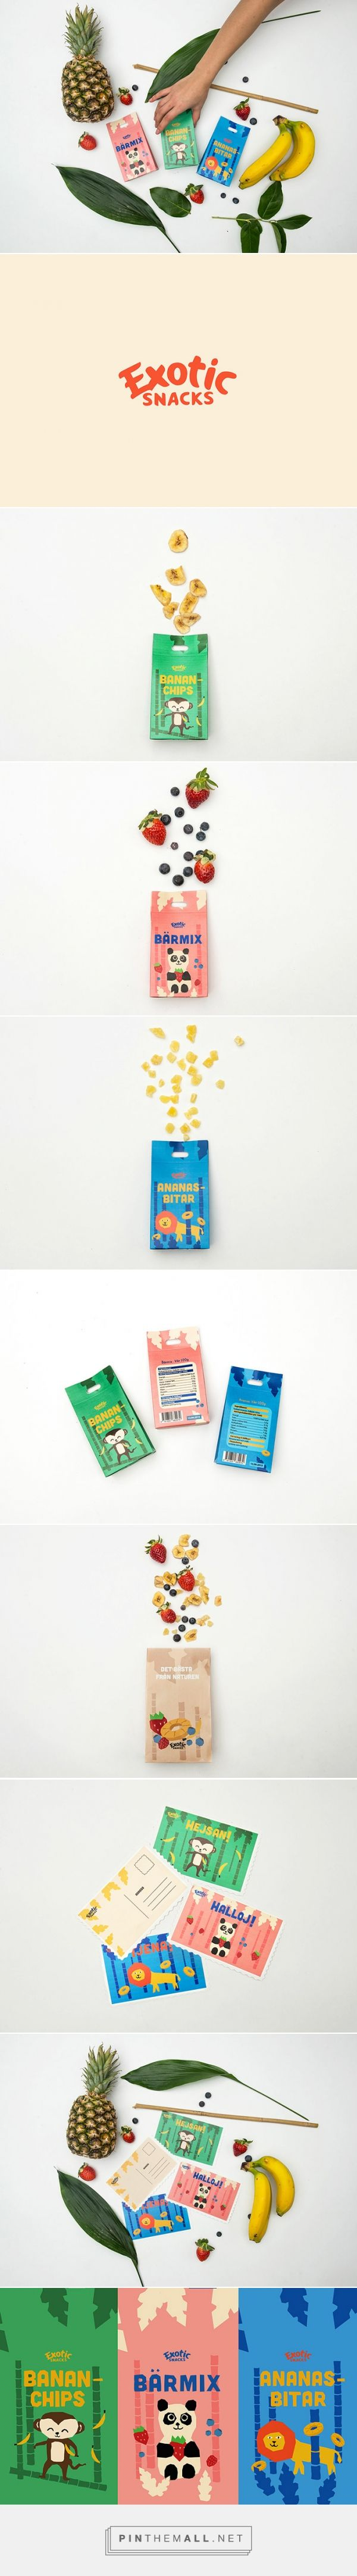 Exotic Snacks by William Sörqvist, Sweden curated by Packaging Diva PD. The cutest exotic snack packaging : )